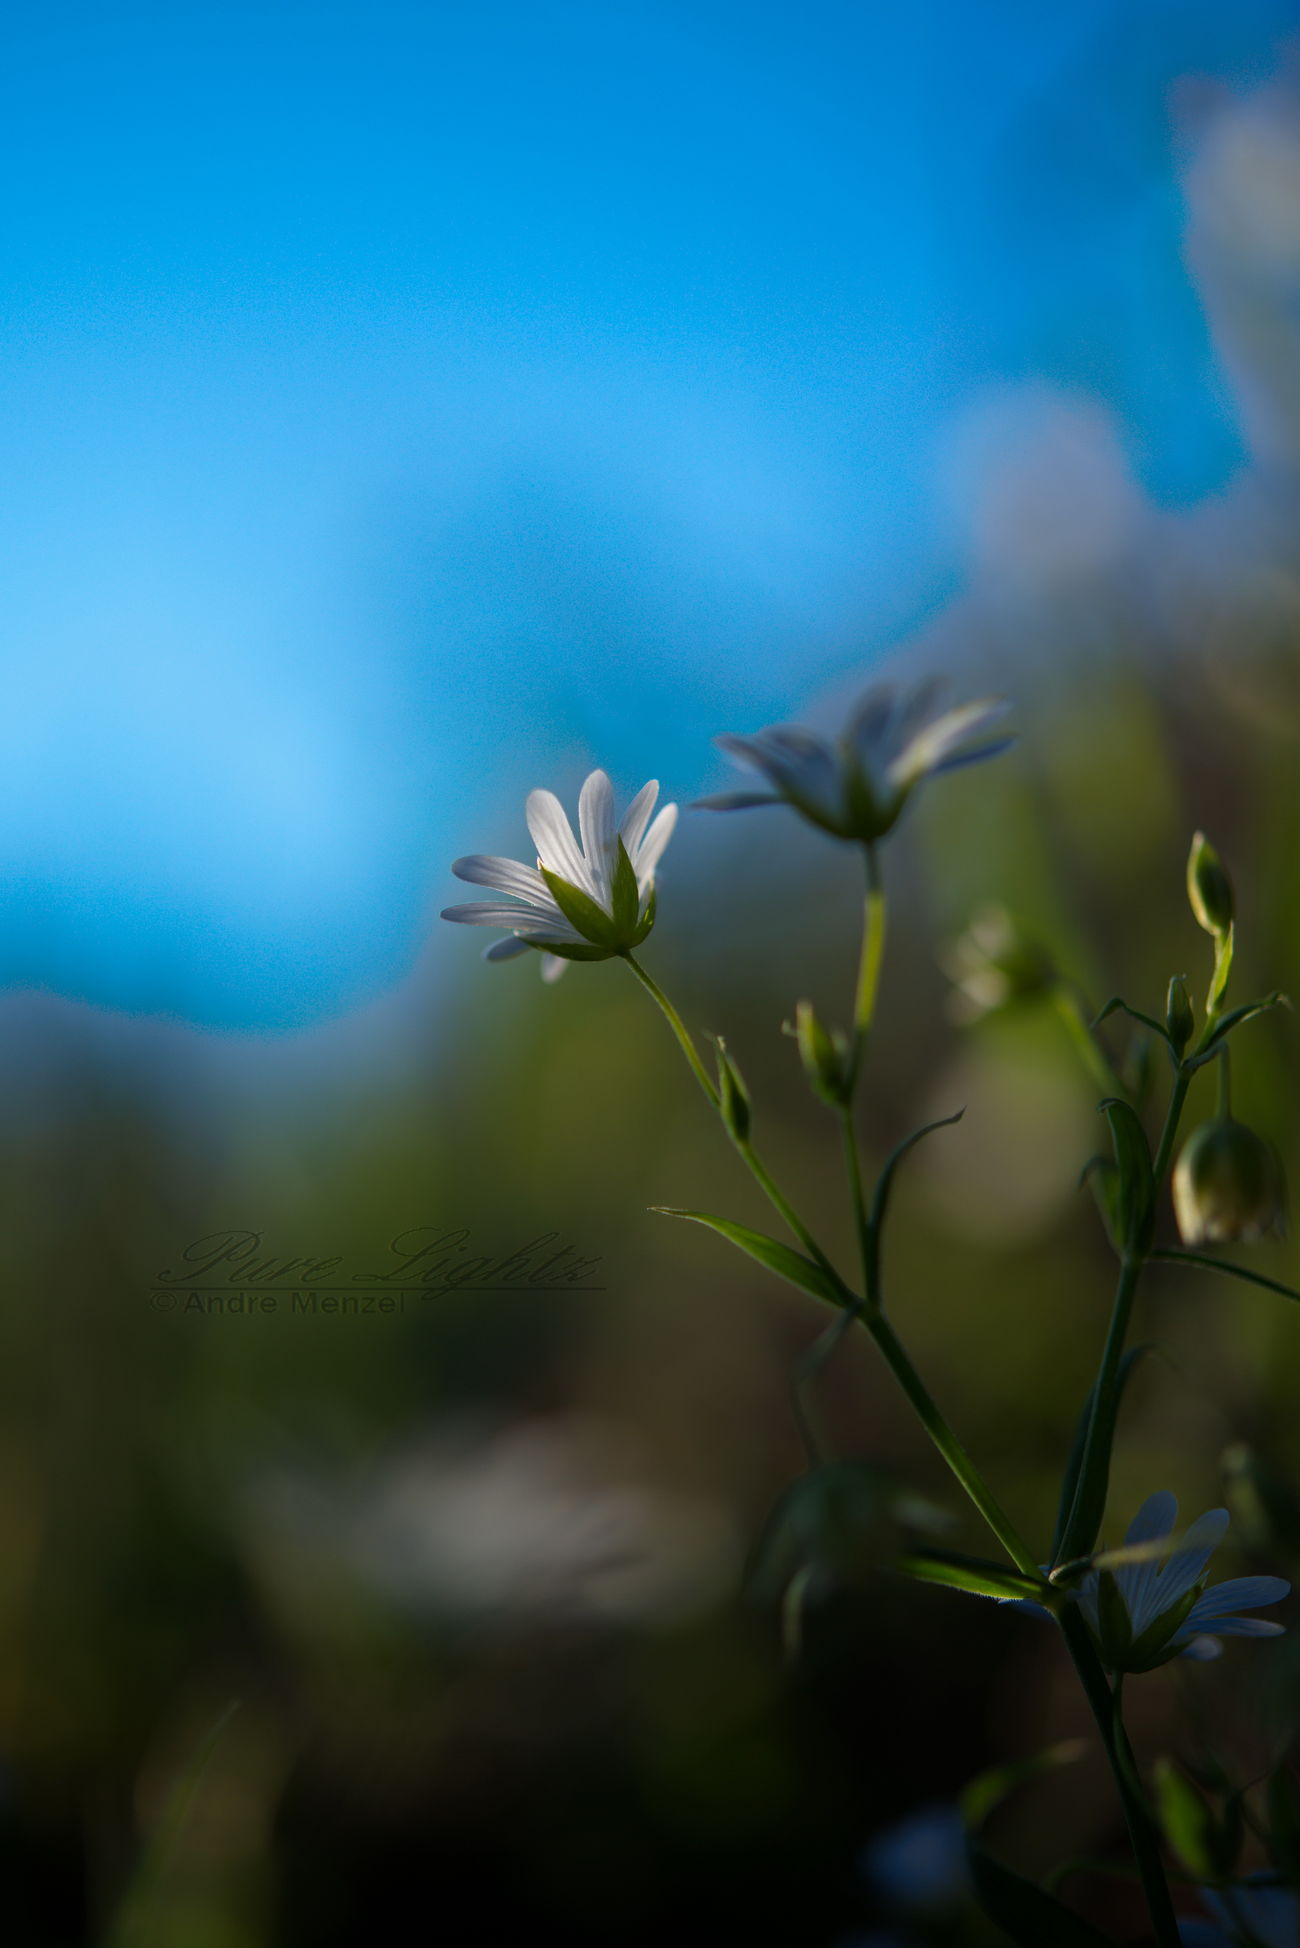 Close-up Flower Flower Head Fragility Golden Hour Growth Macro Photography Nature Outdoors Plant Selective Focus White Flower